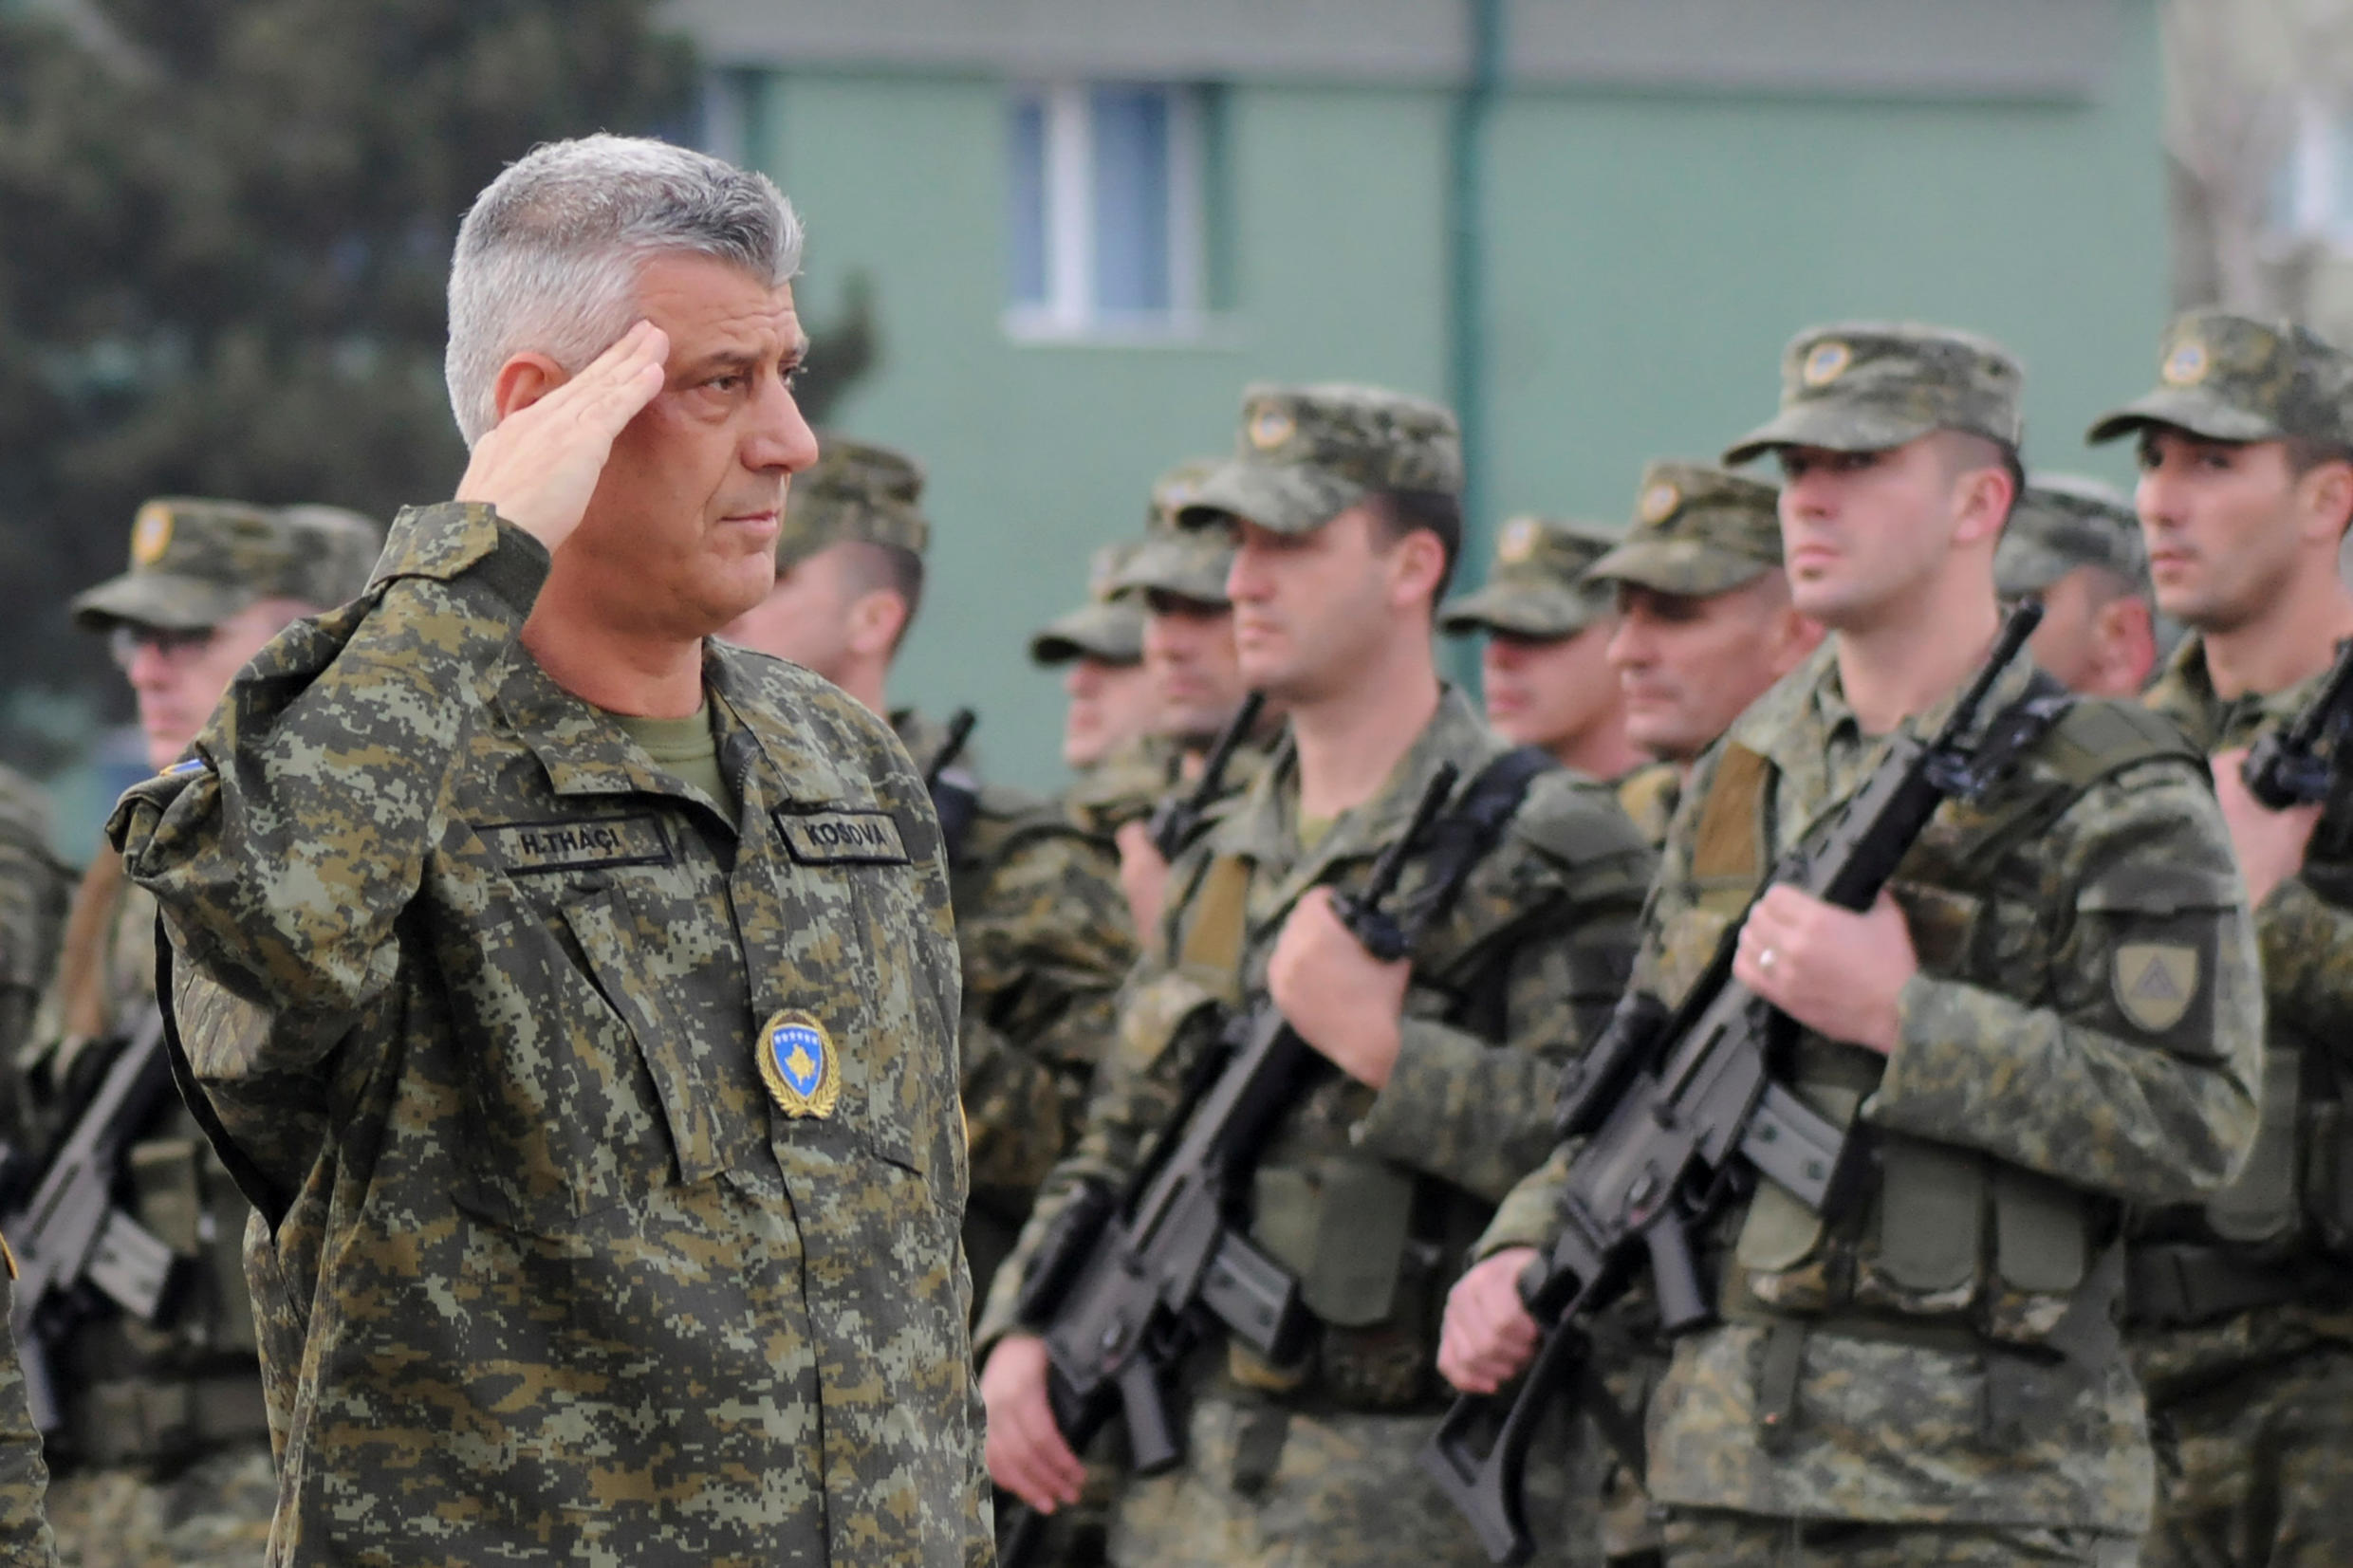 Kosovar president Hashim Thaci inspects security forces